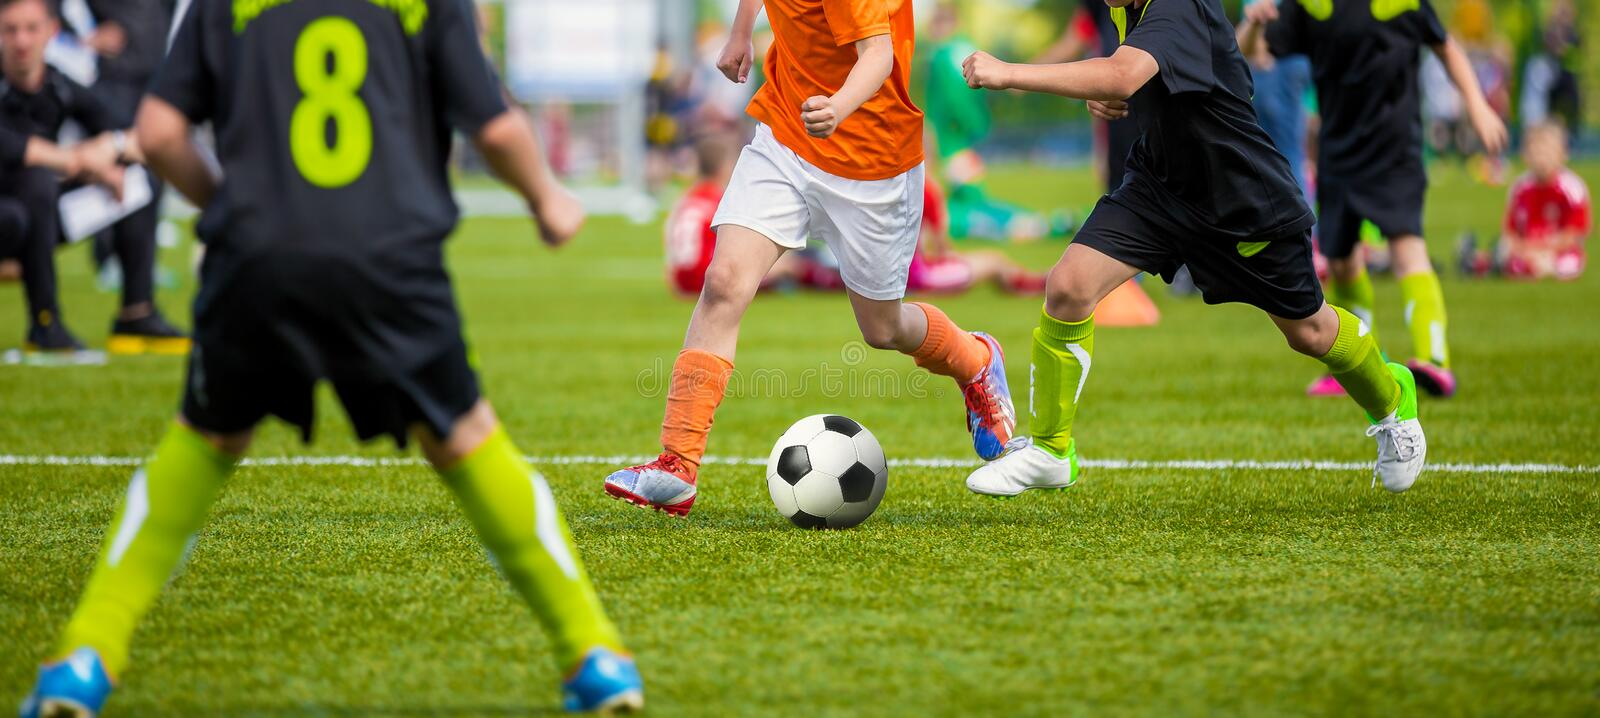 Kids Playing Football Soccer Game on Sports Field. Boys Play Soccer Match on Green Grass. Youth Soccer Tournament Teams Competitio stock images